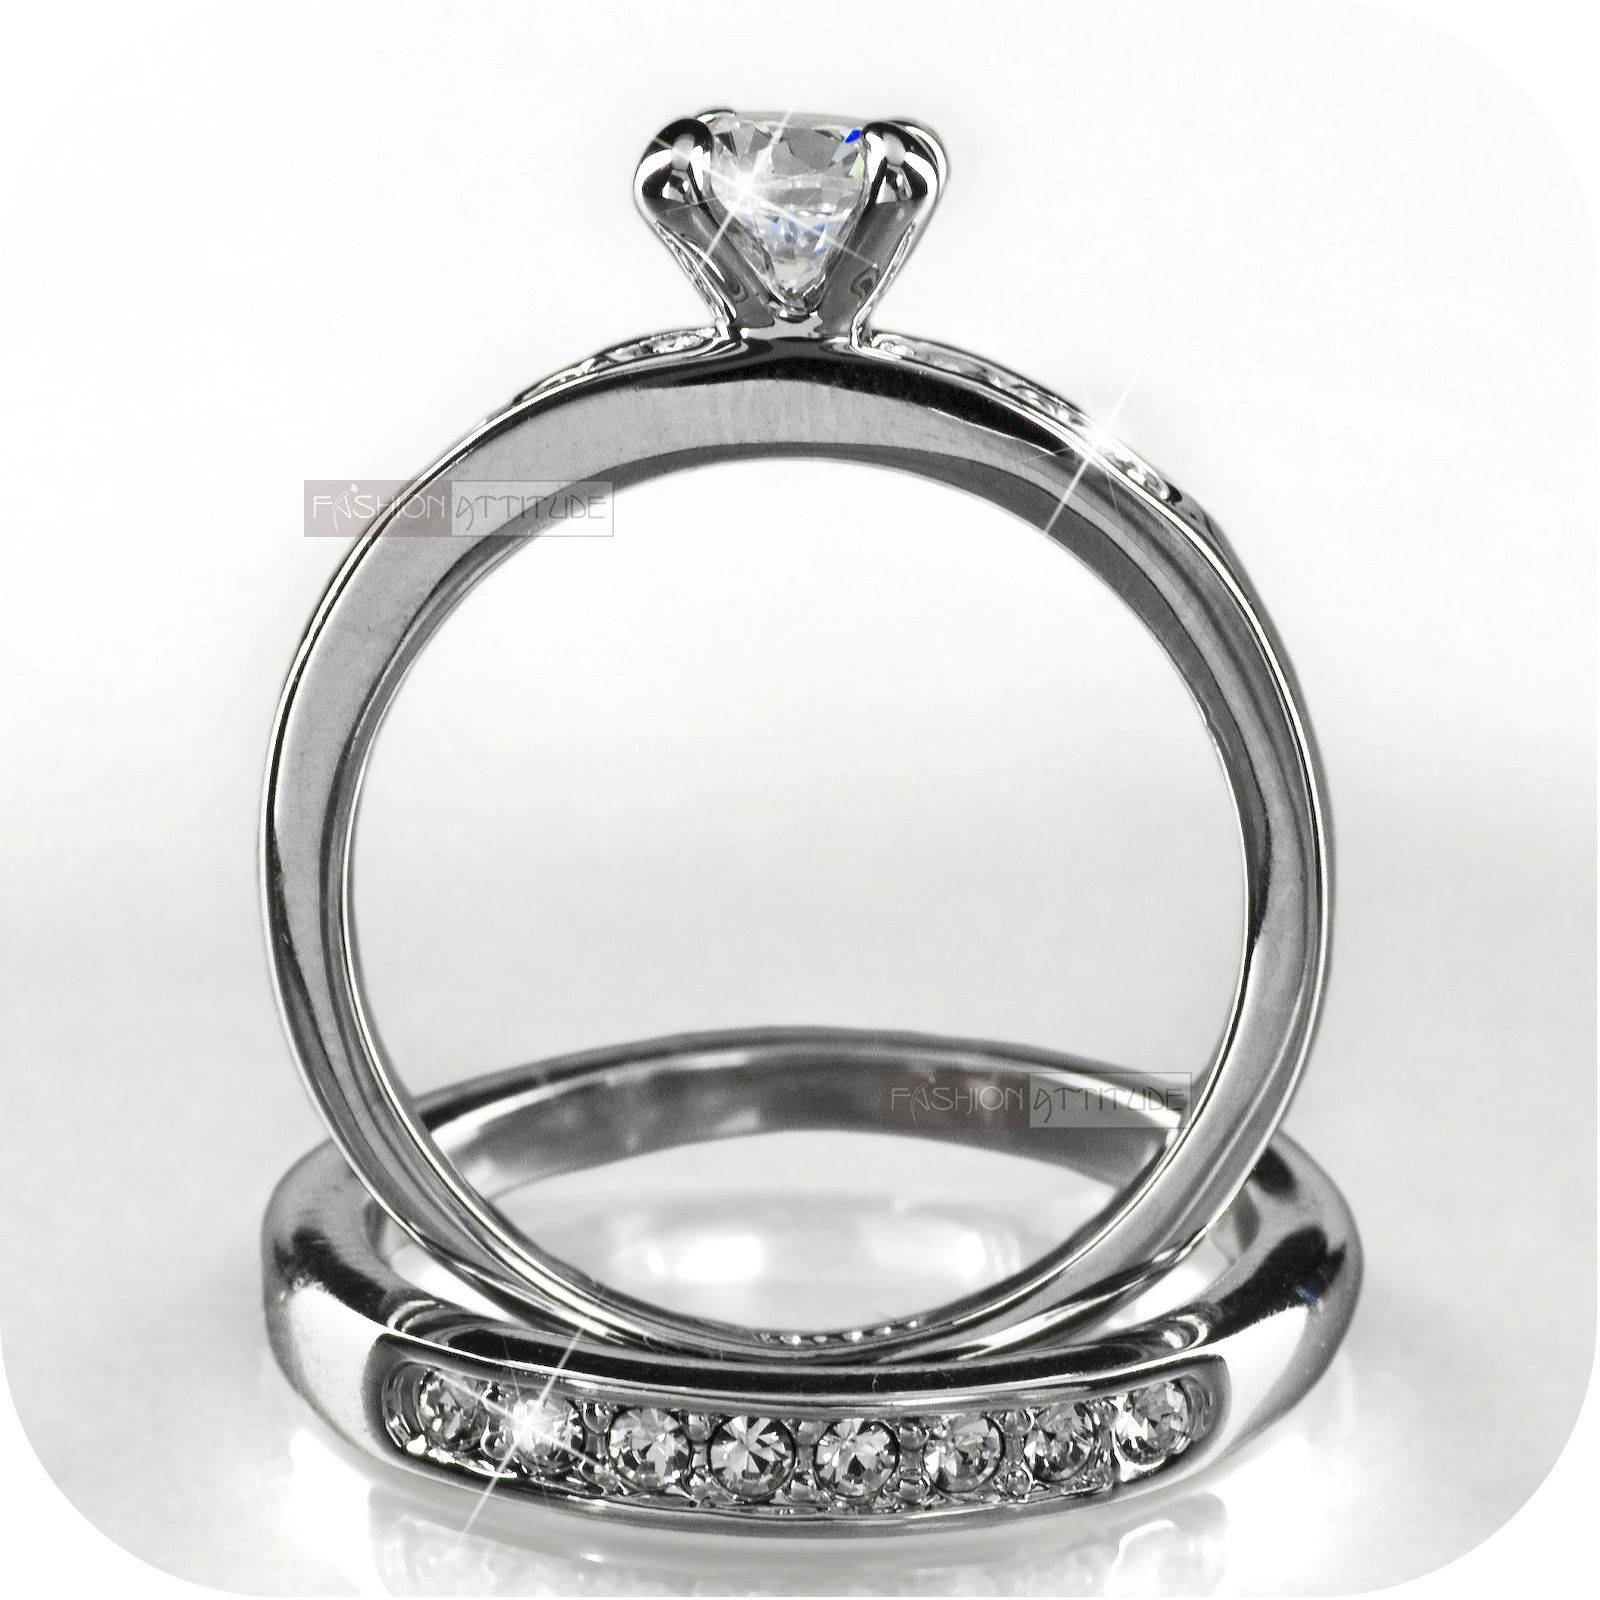 18k White Gold Gp Made With Swarovski Crystal Wedding Ring Set Us For Swarovski Crystal Wedding Rings (View 13 of 15)